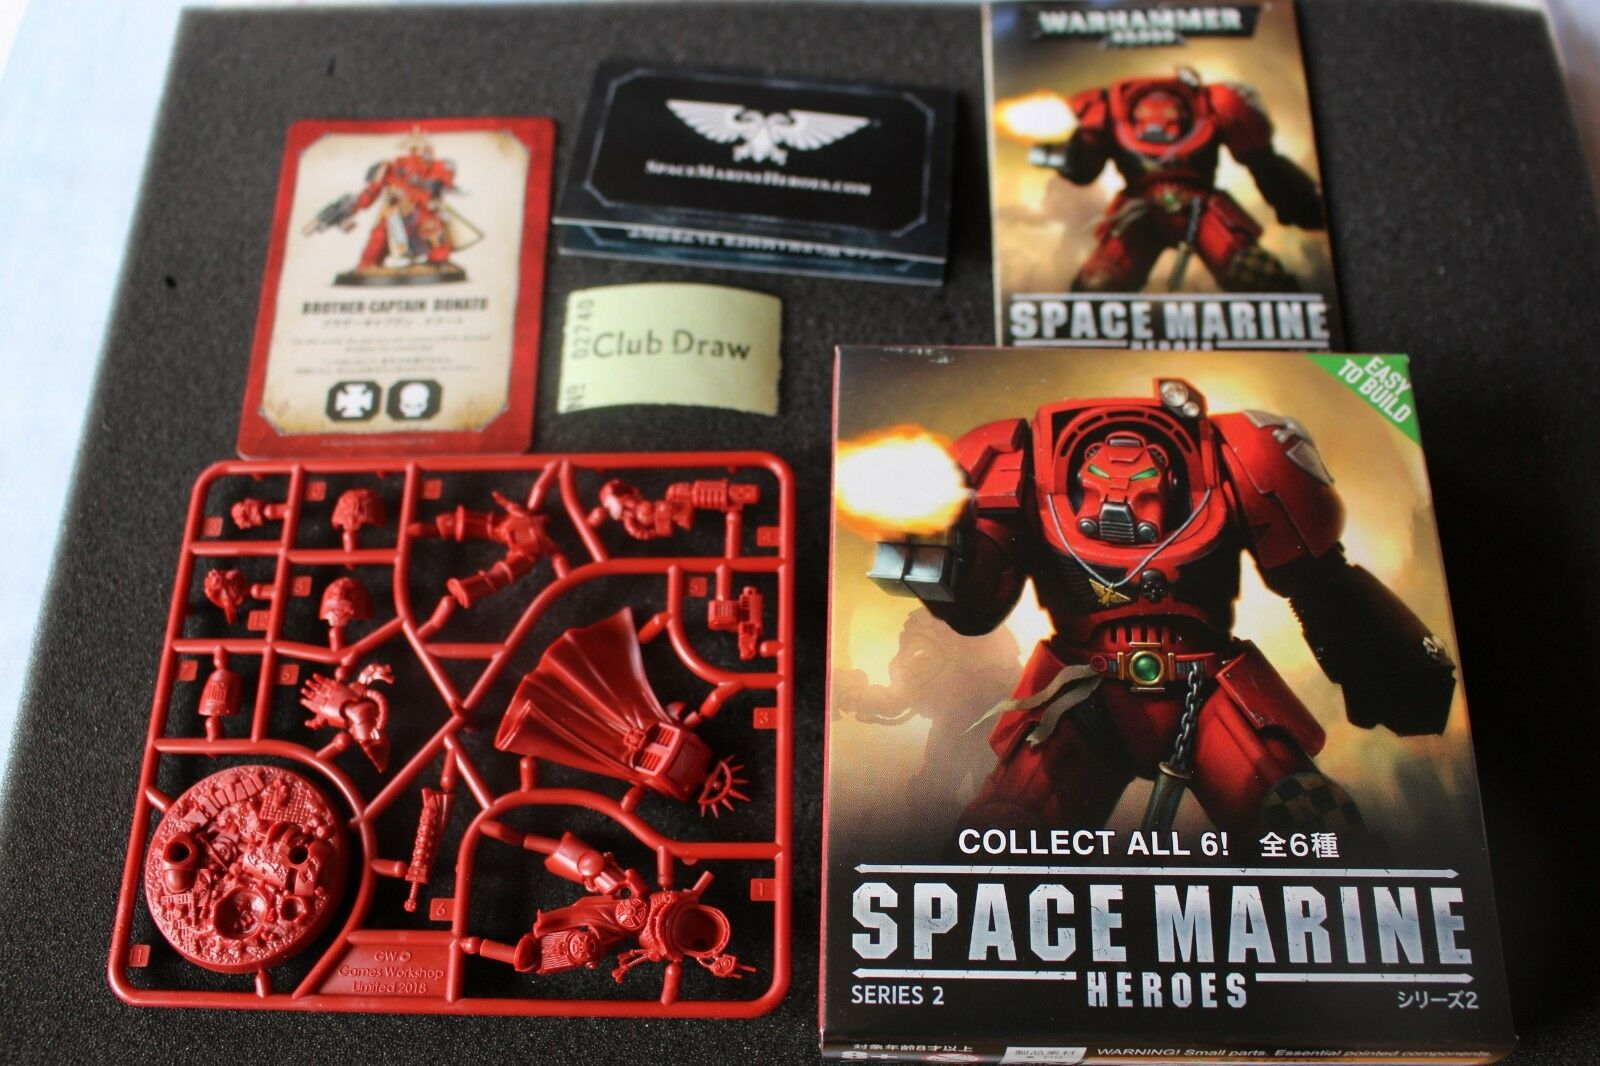 Space Marine Heroes Bredher Captain Donato Japan Exclusive Games Workshop New